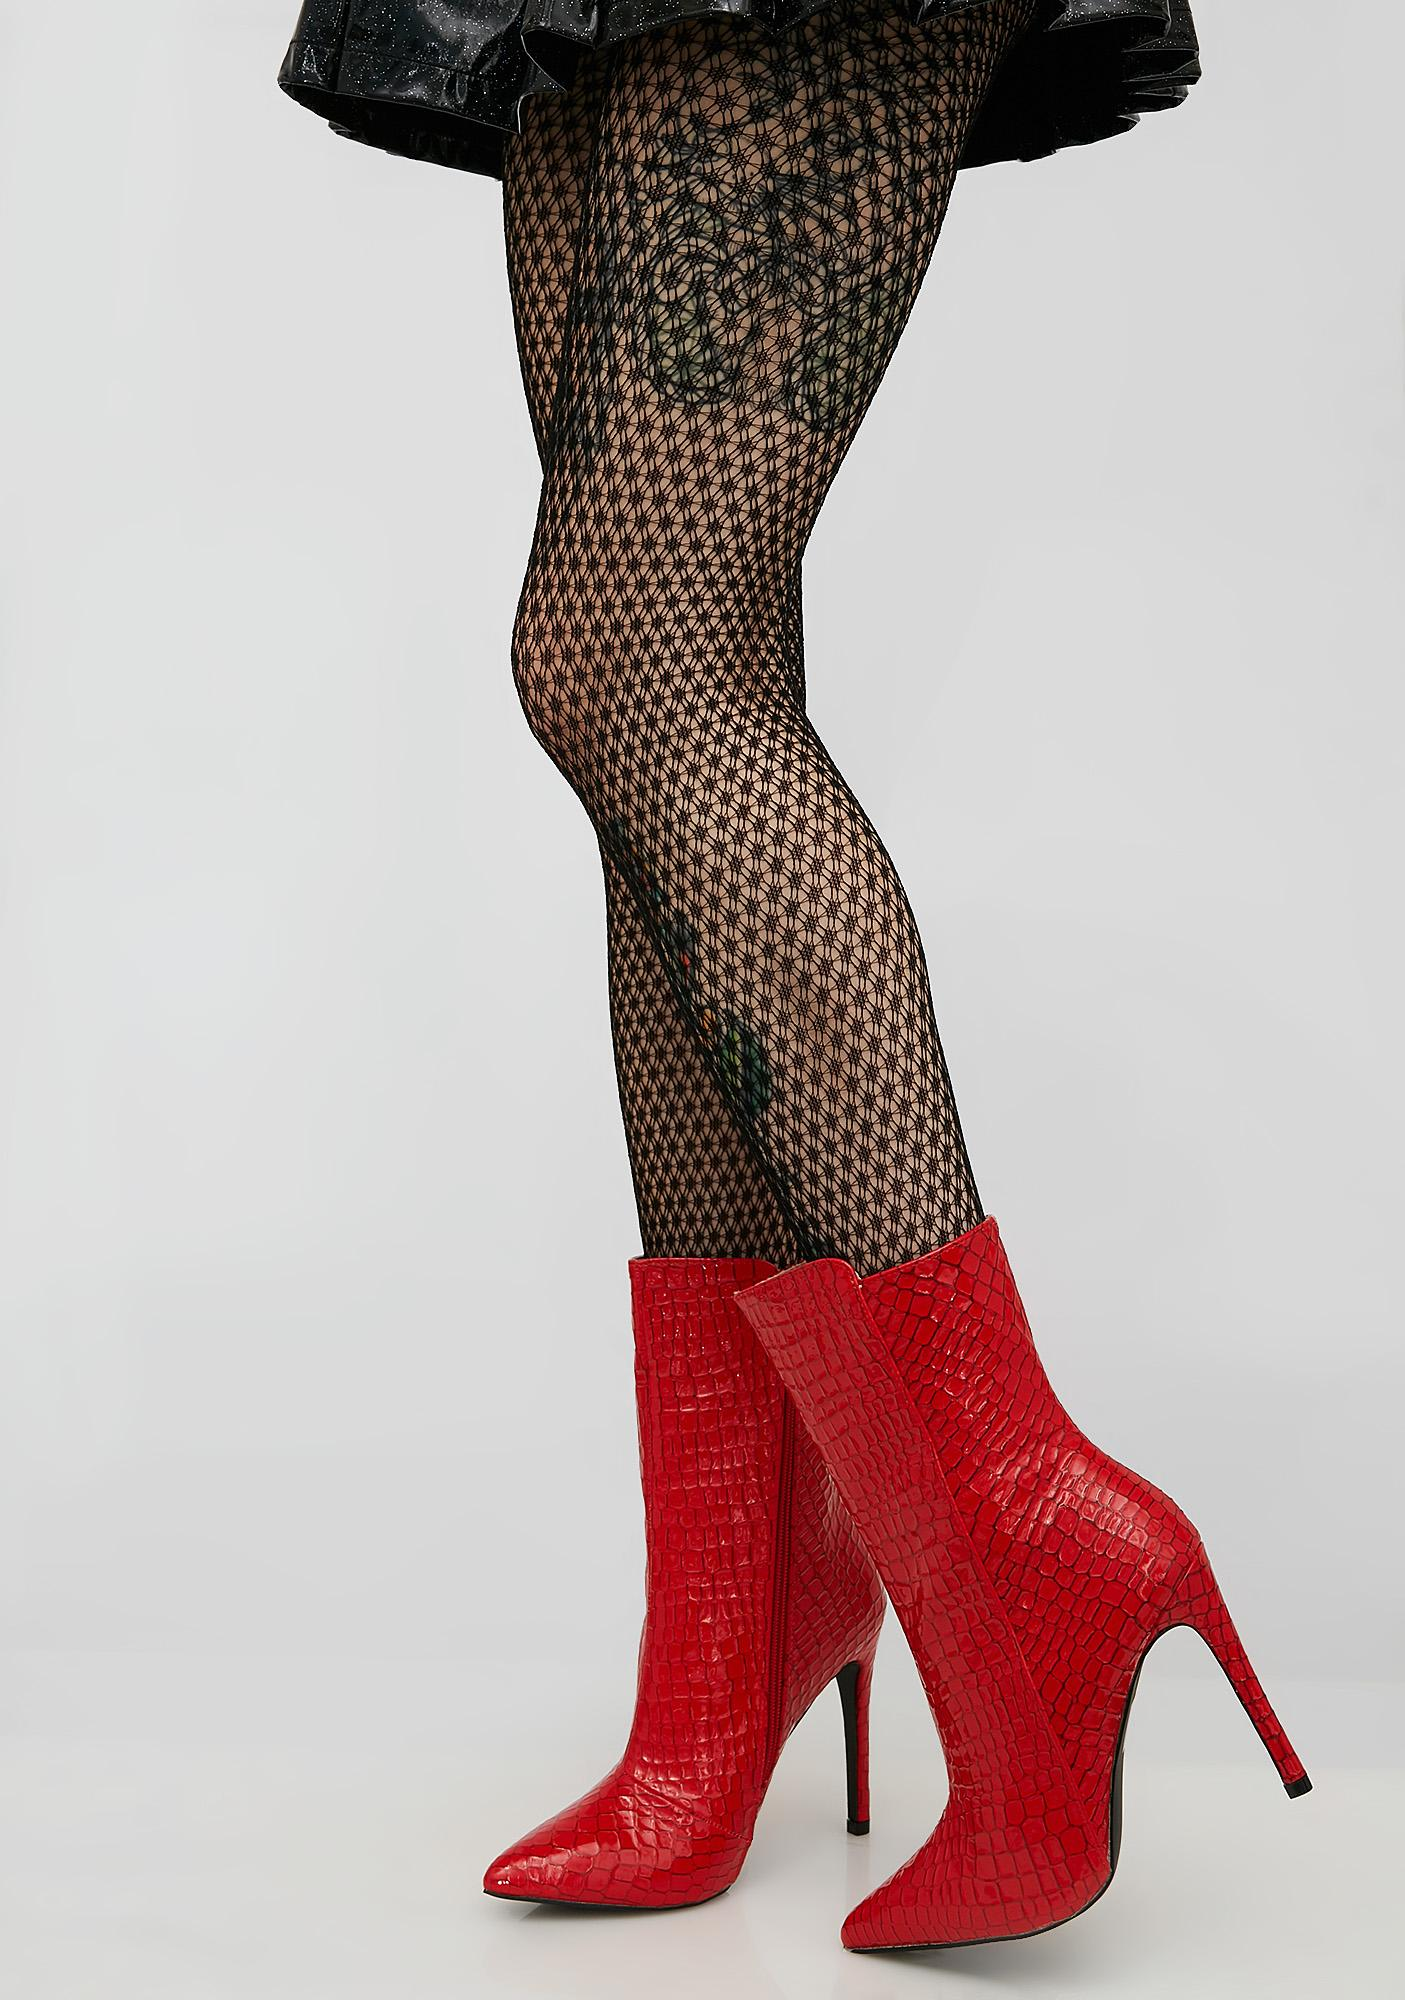 Beehive Sheer Tights